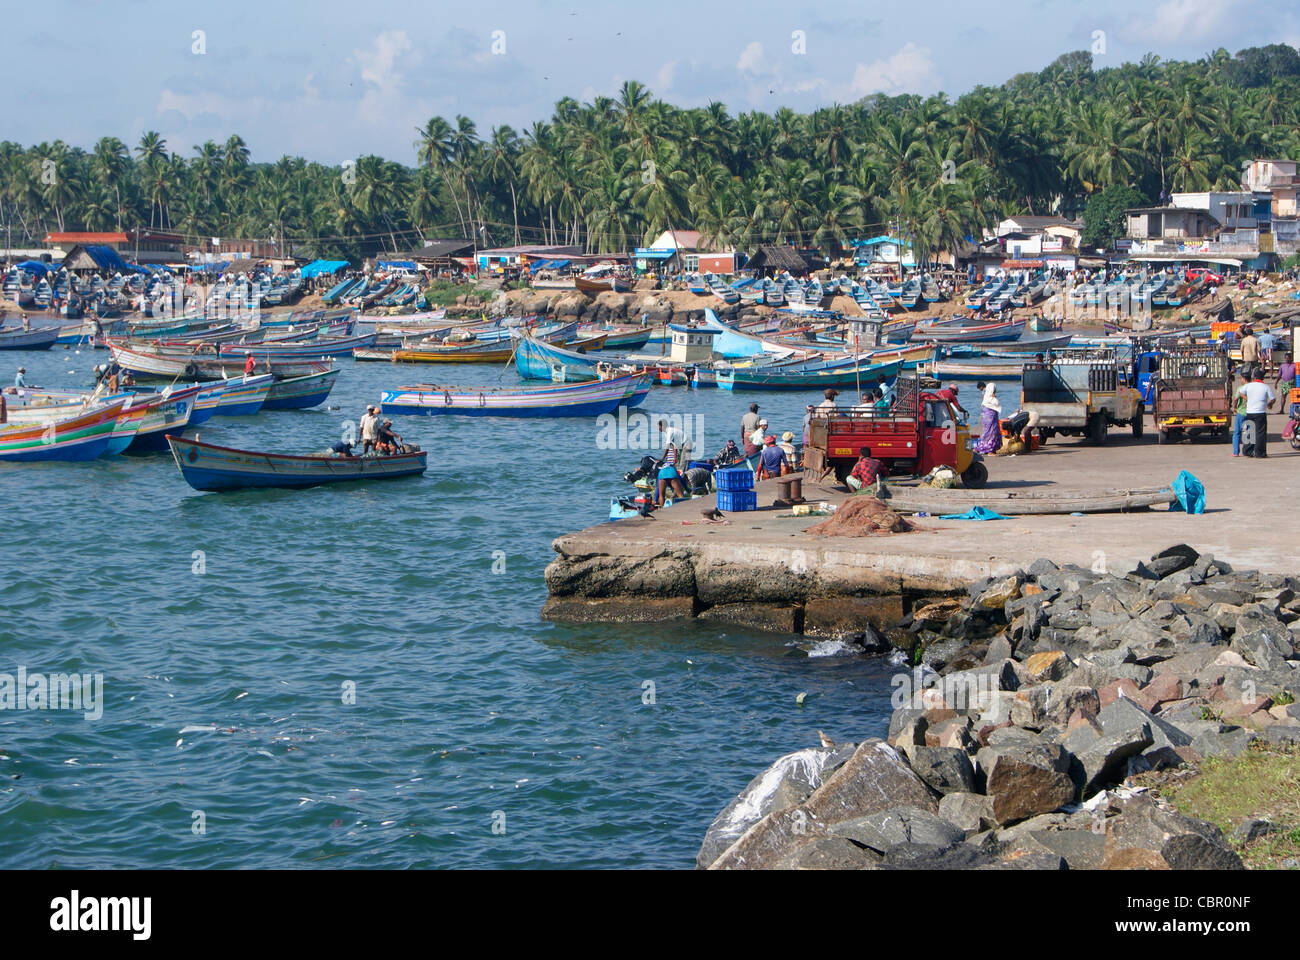 Rush full Vizhinjam Harbor in the evening.Vizhinjam Port is one of the major Fishing port of Kerala,India - Stock Image